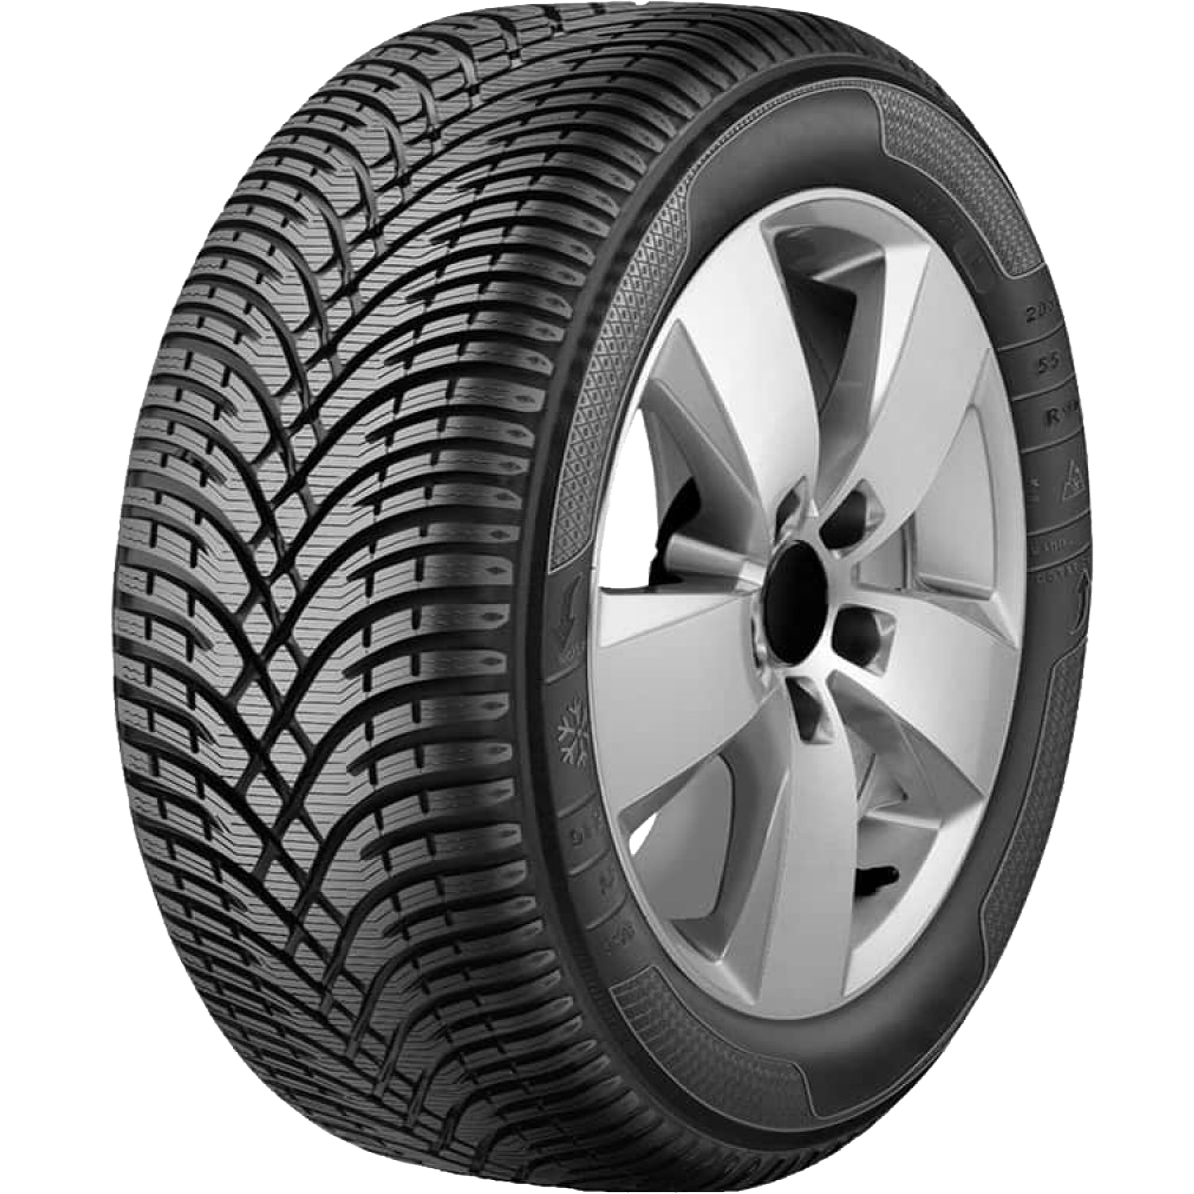 Ziemas riepas BF GOODRICH G-FORCE WINTER2 245/45 R18 100V ziemas-bf-goodrich-g-force-winter2-245-45-r18-100v-965179305487